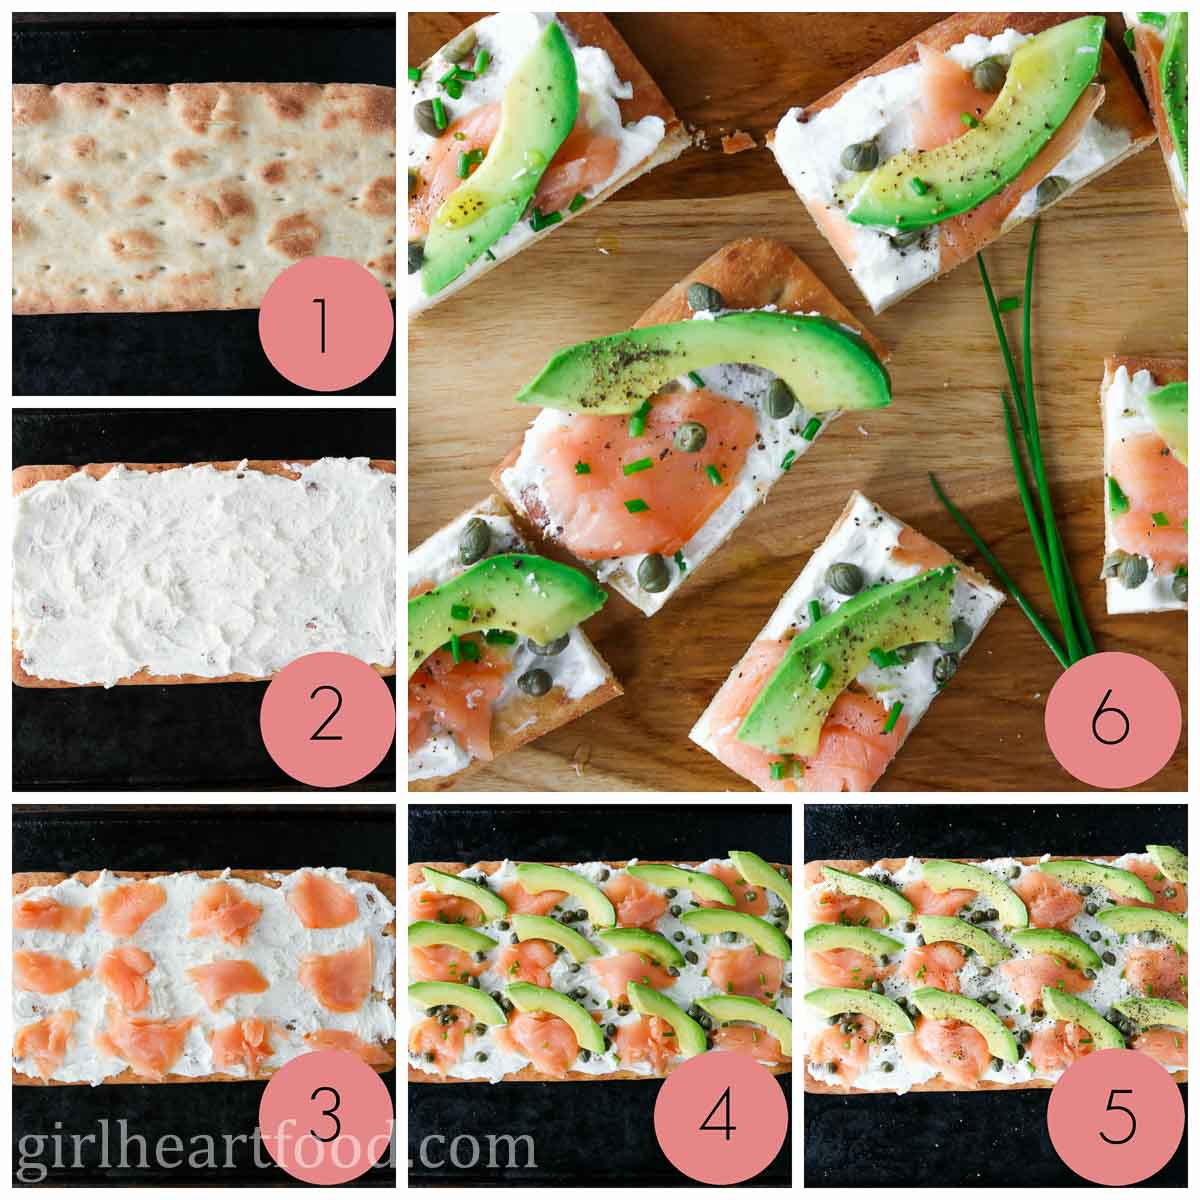 Collage of steps to make a smoked salmon and avocado flatbread appetizer.